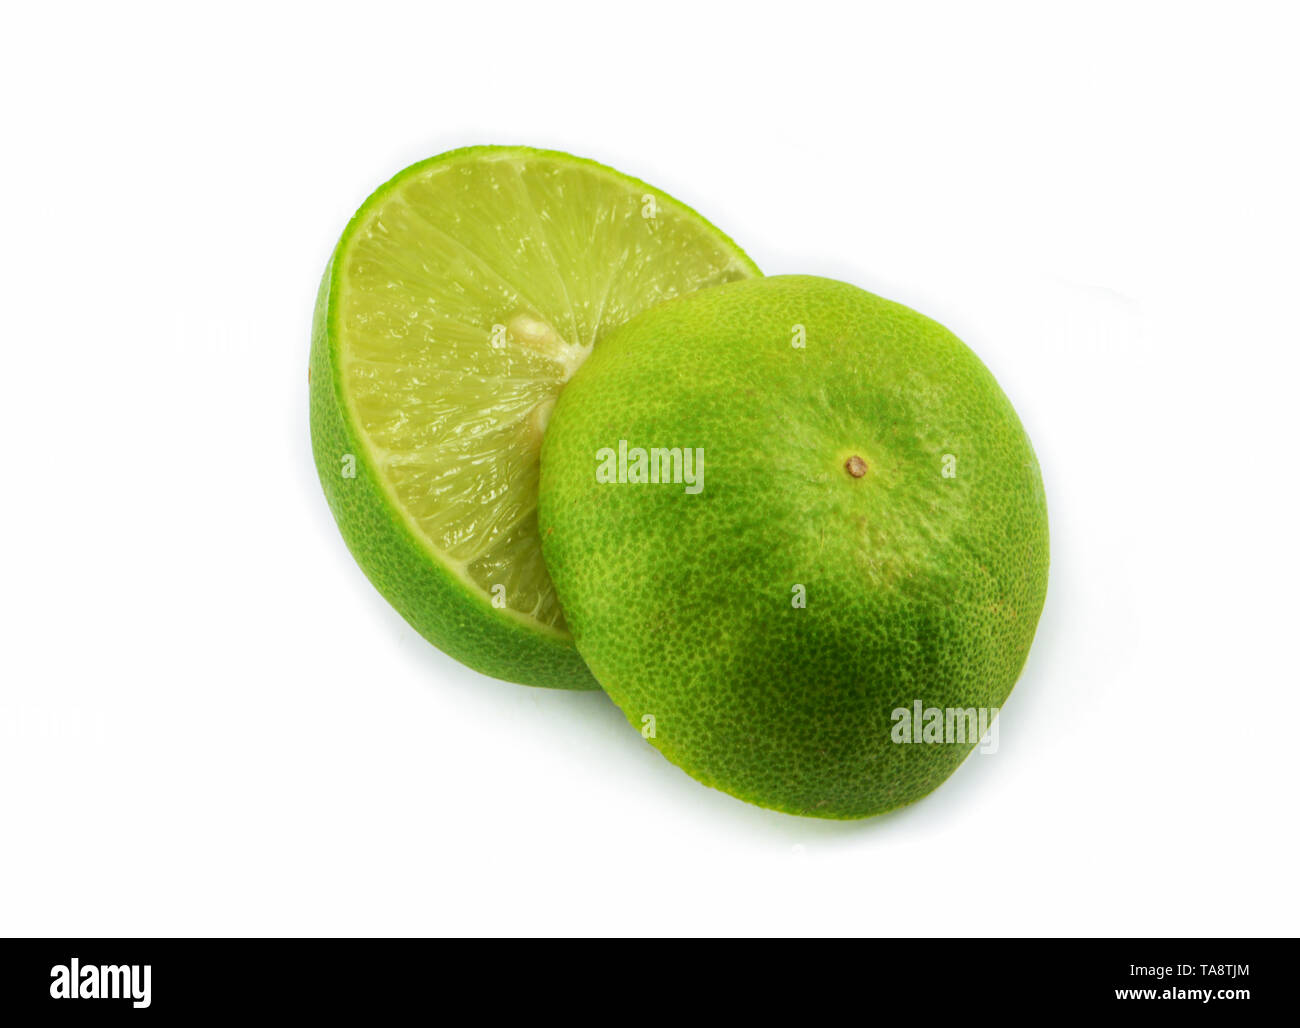 lime slice isolated / Fresh green limes slice half lemon on white background - Stock Image